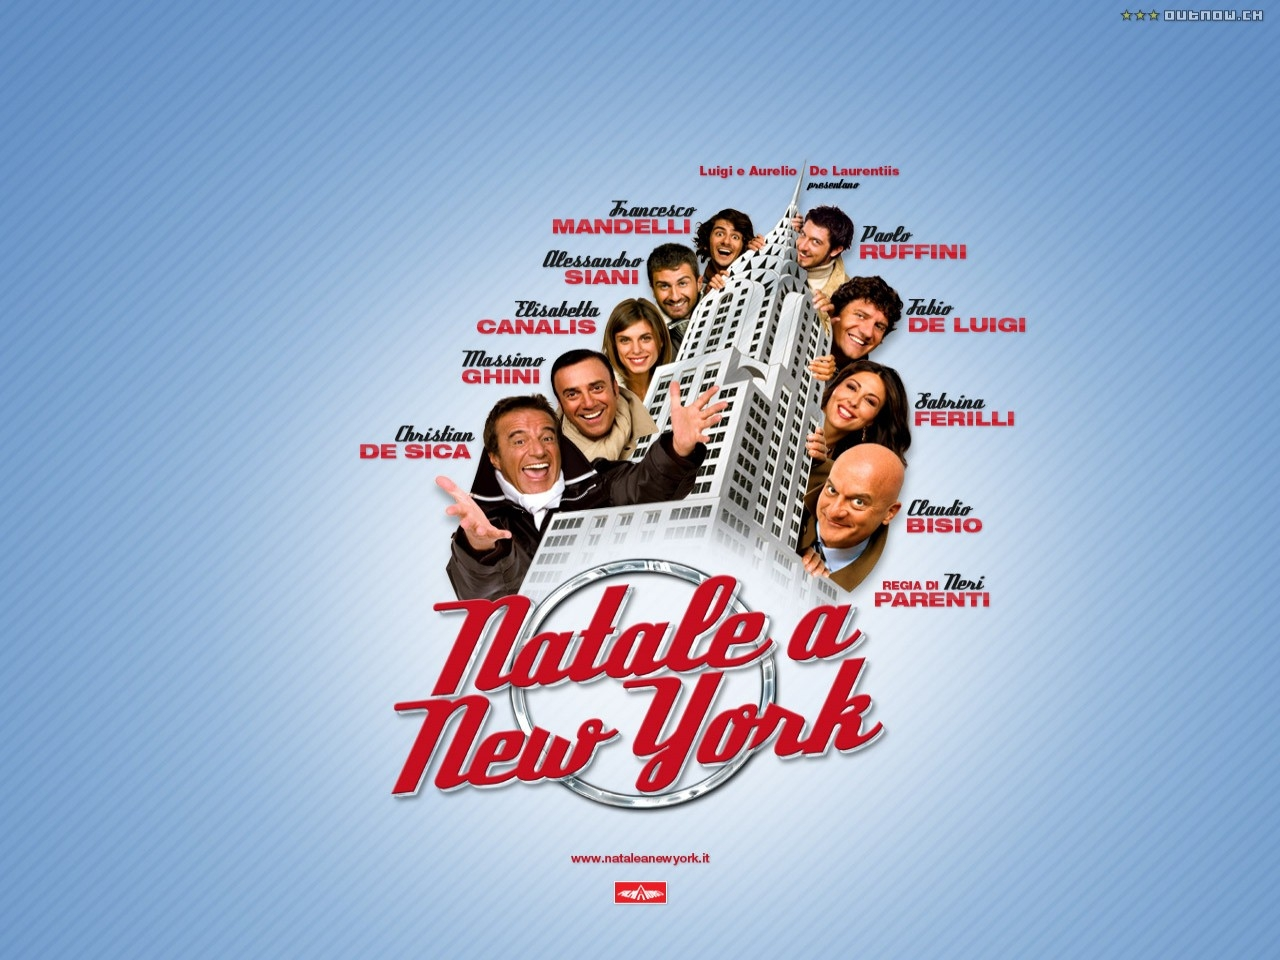 Wallpaper del film Natale a New York